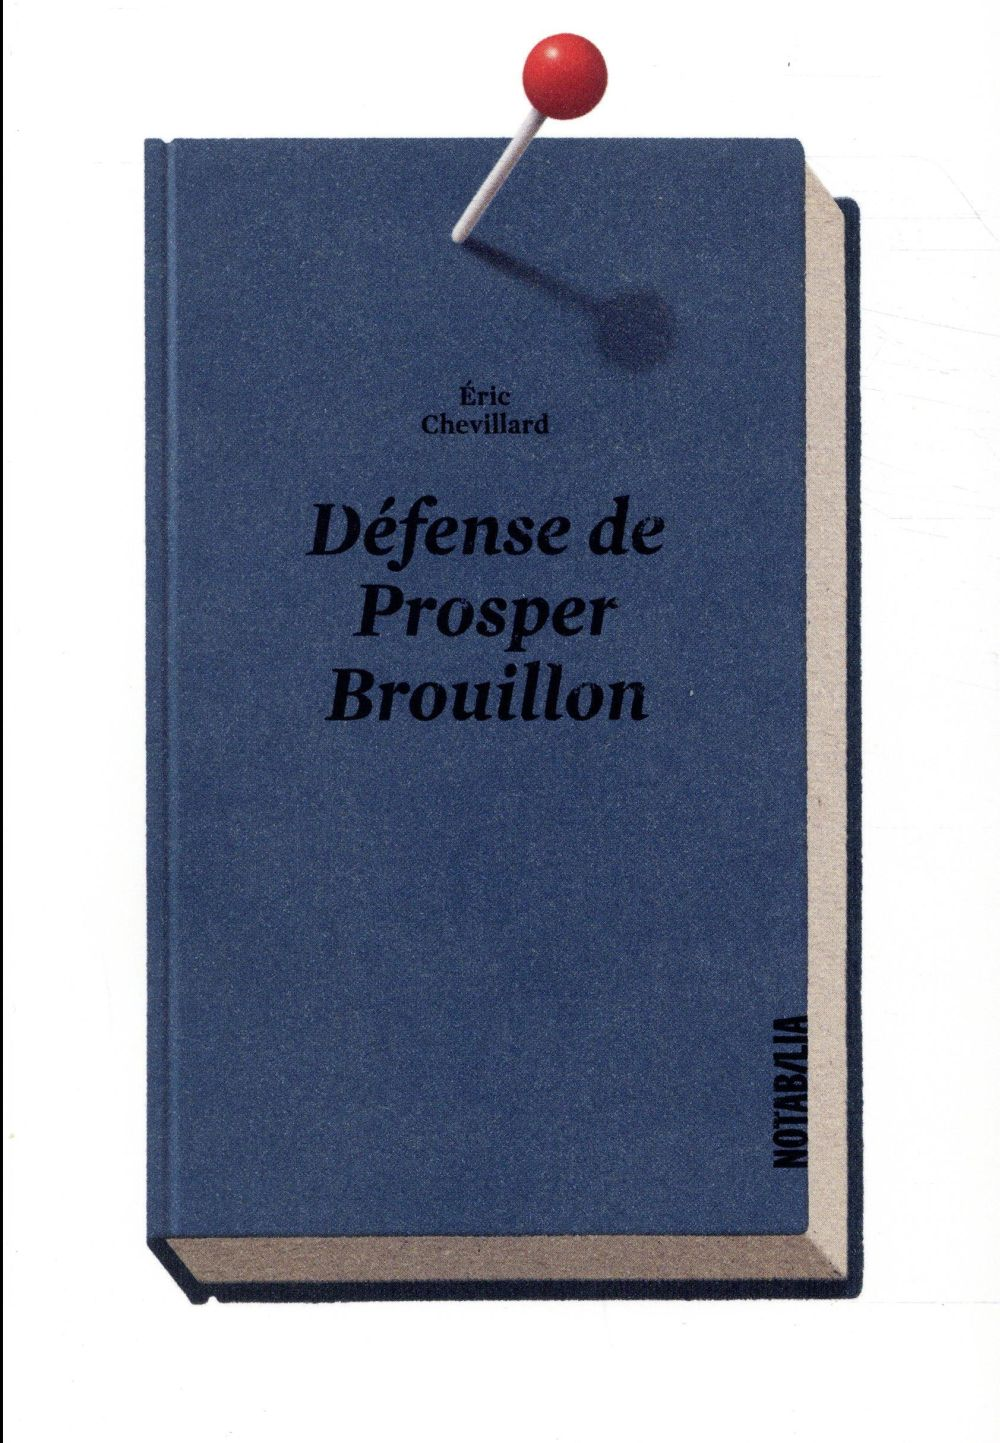 DEFENSE DE PROSPER BROUILLON